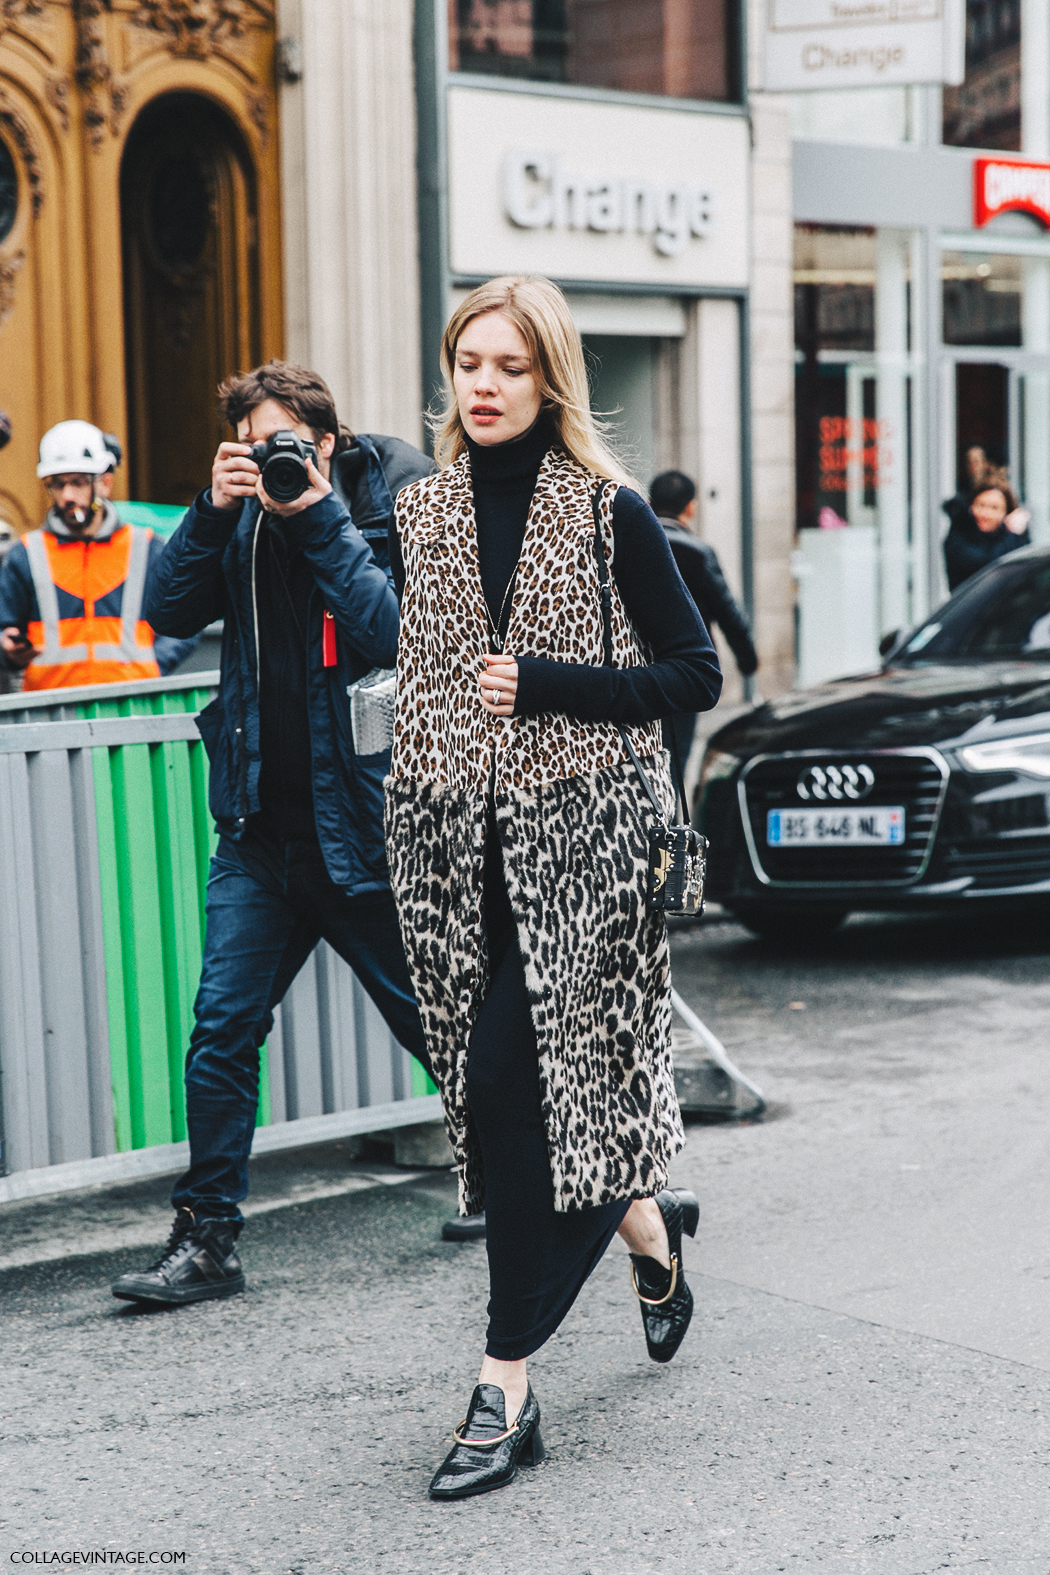 PFW-Paris_Fashion_Week_Fall_2016-Street_Style-Collage_Vintage-Stella_McCartney-Natalia_Vodianova-LEopard_Vest-Louis_Vuitton_Box-